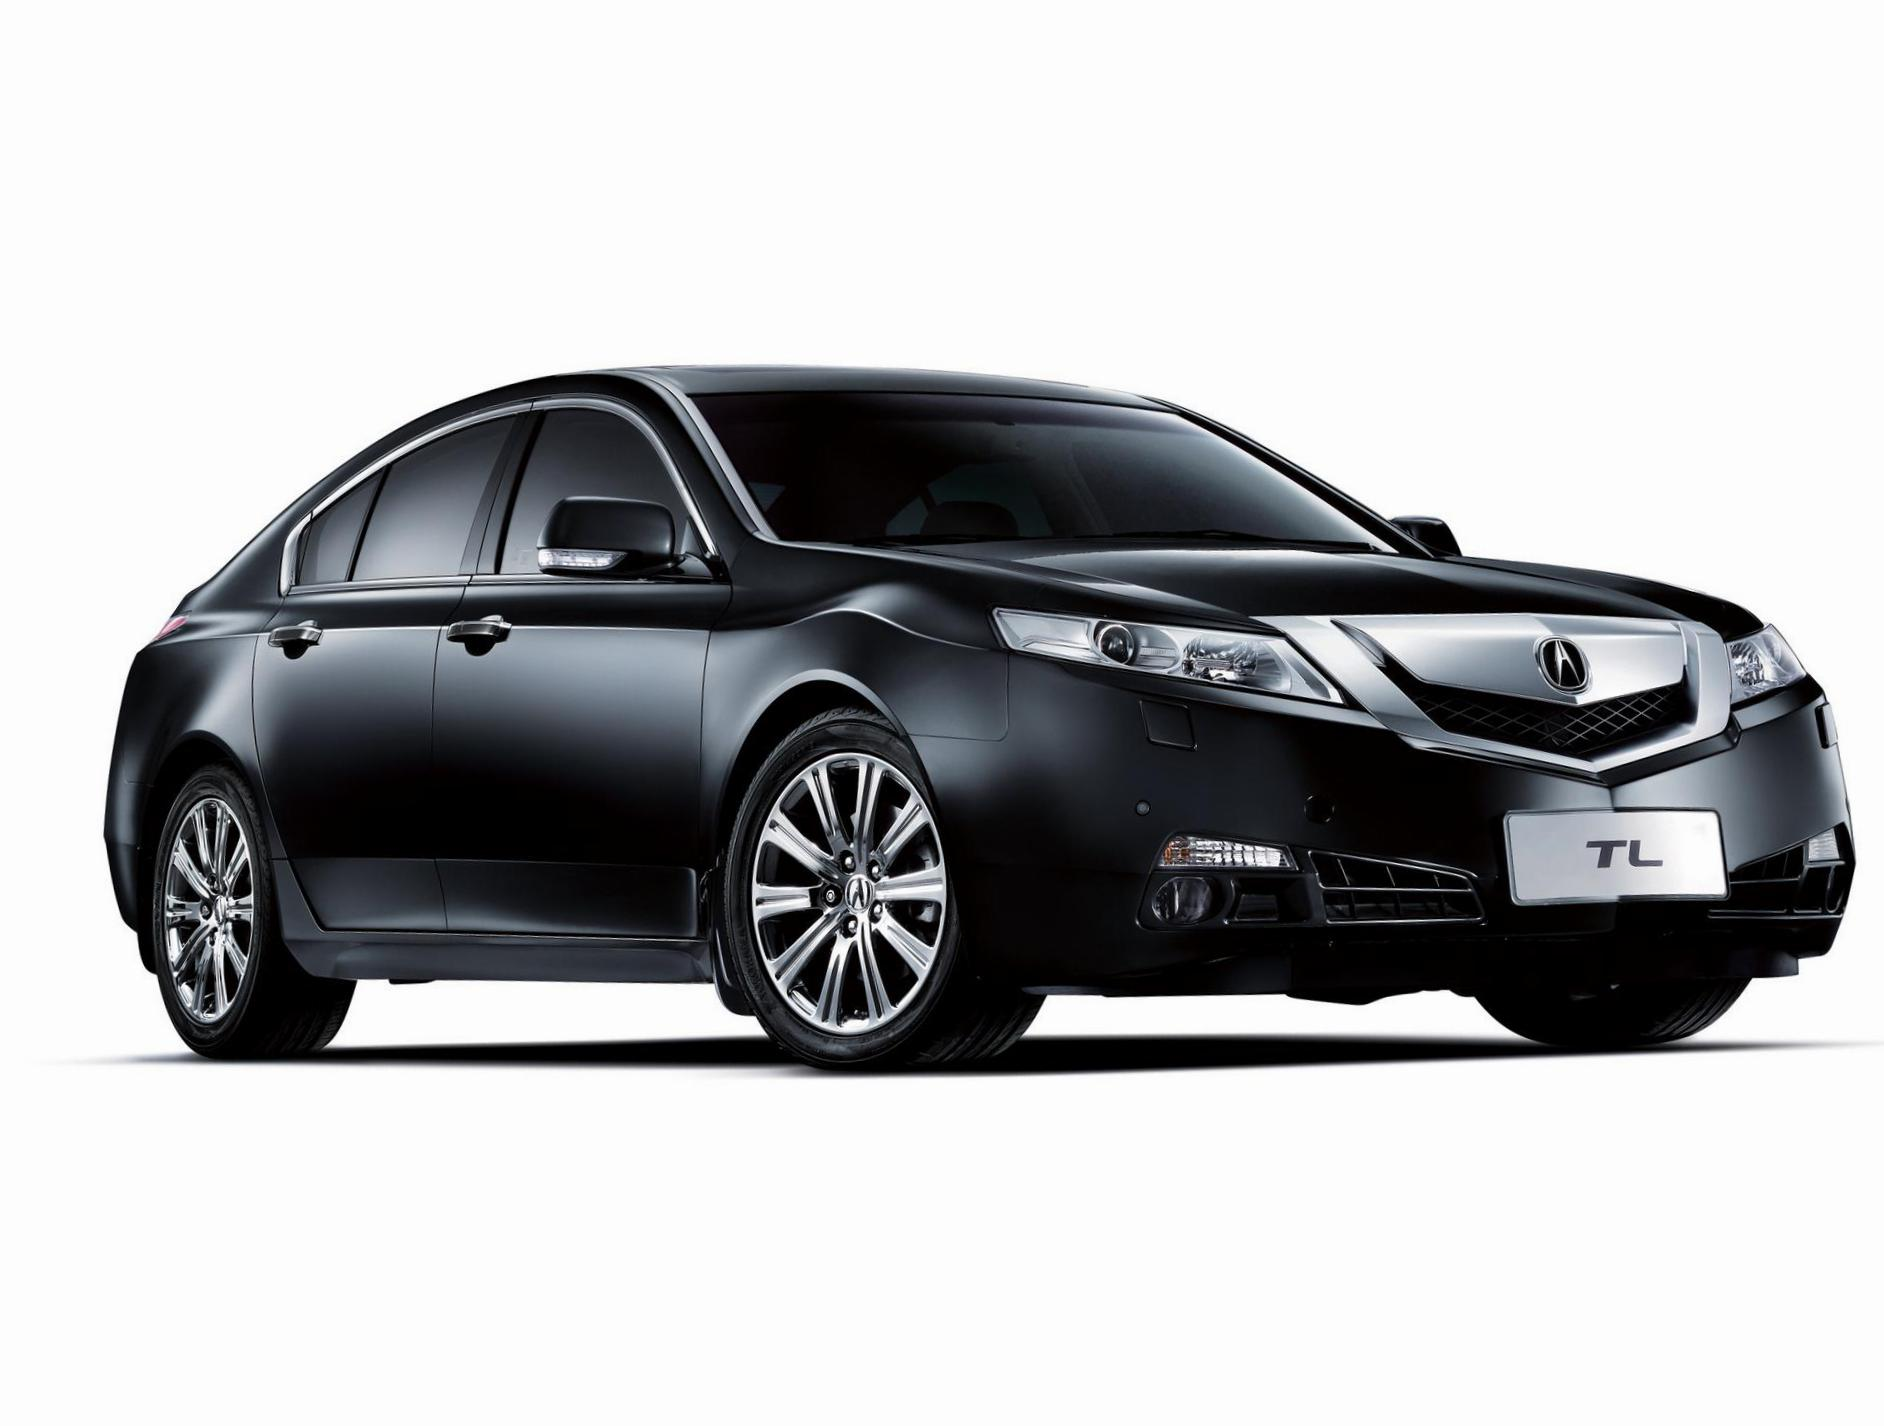 TL Acura approved 2015